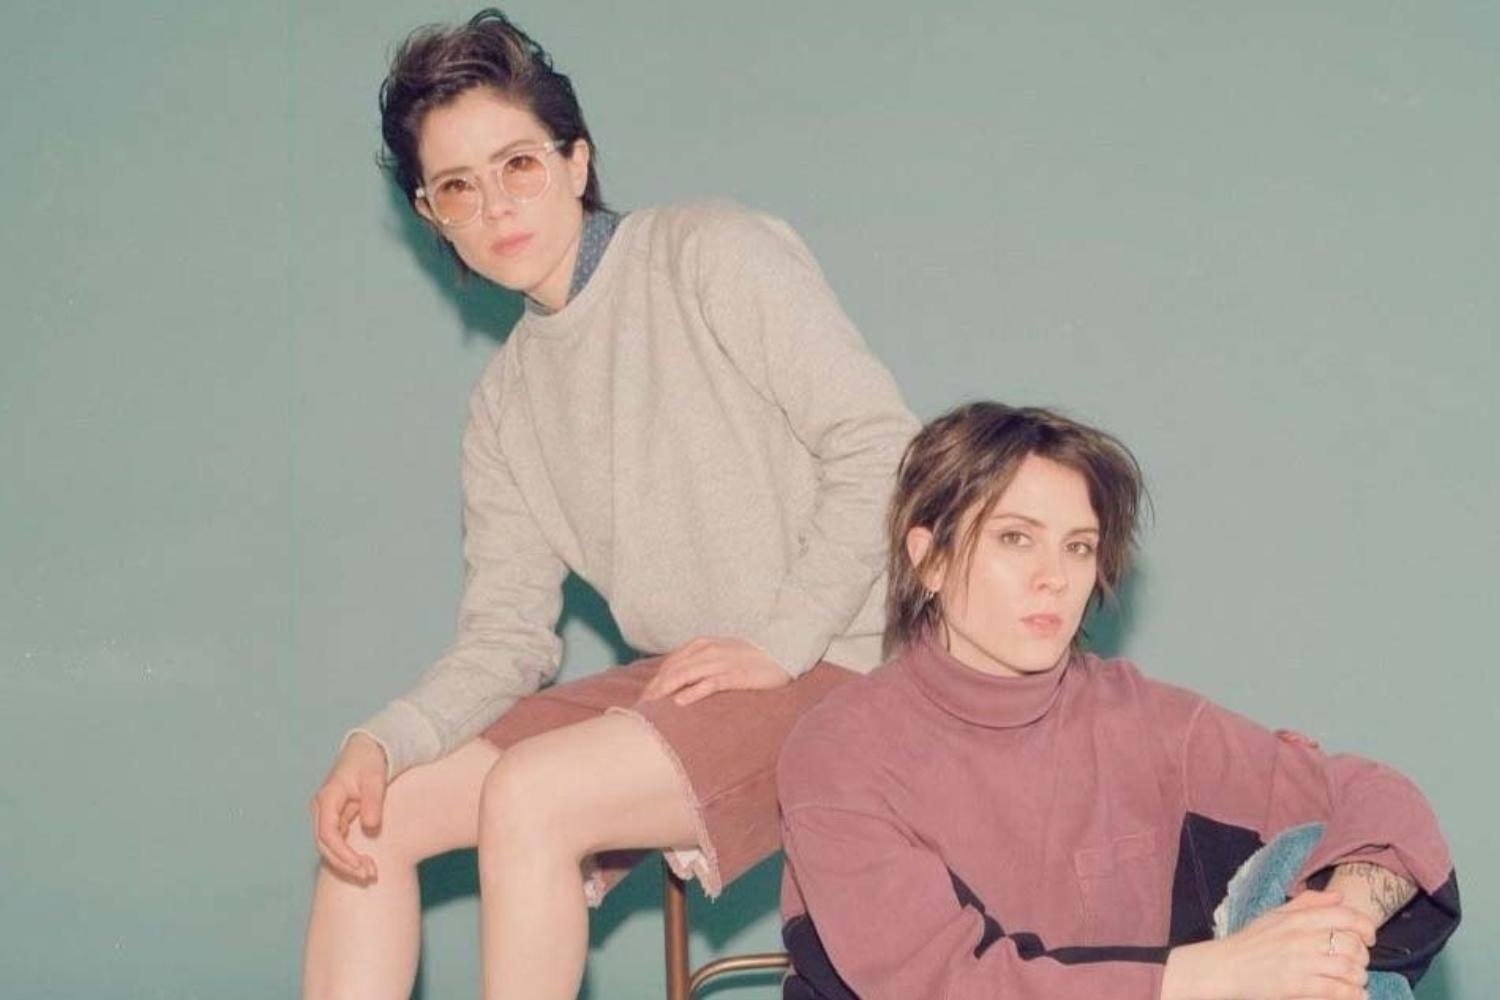 Tegan and Sara announce 'Hey, I'm Just Like You' track listing, share 'I'll Be Back Someday'